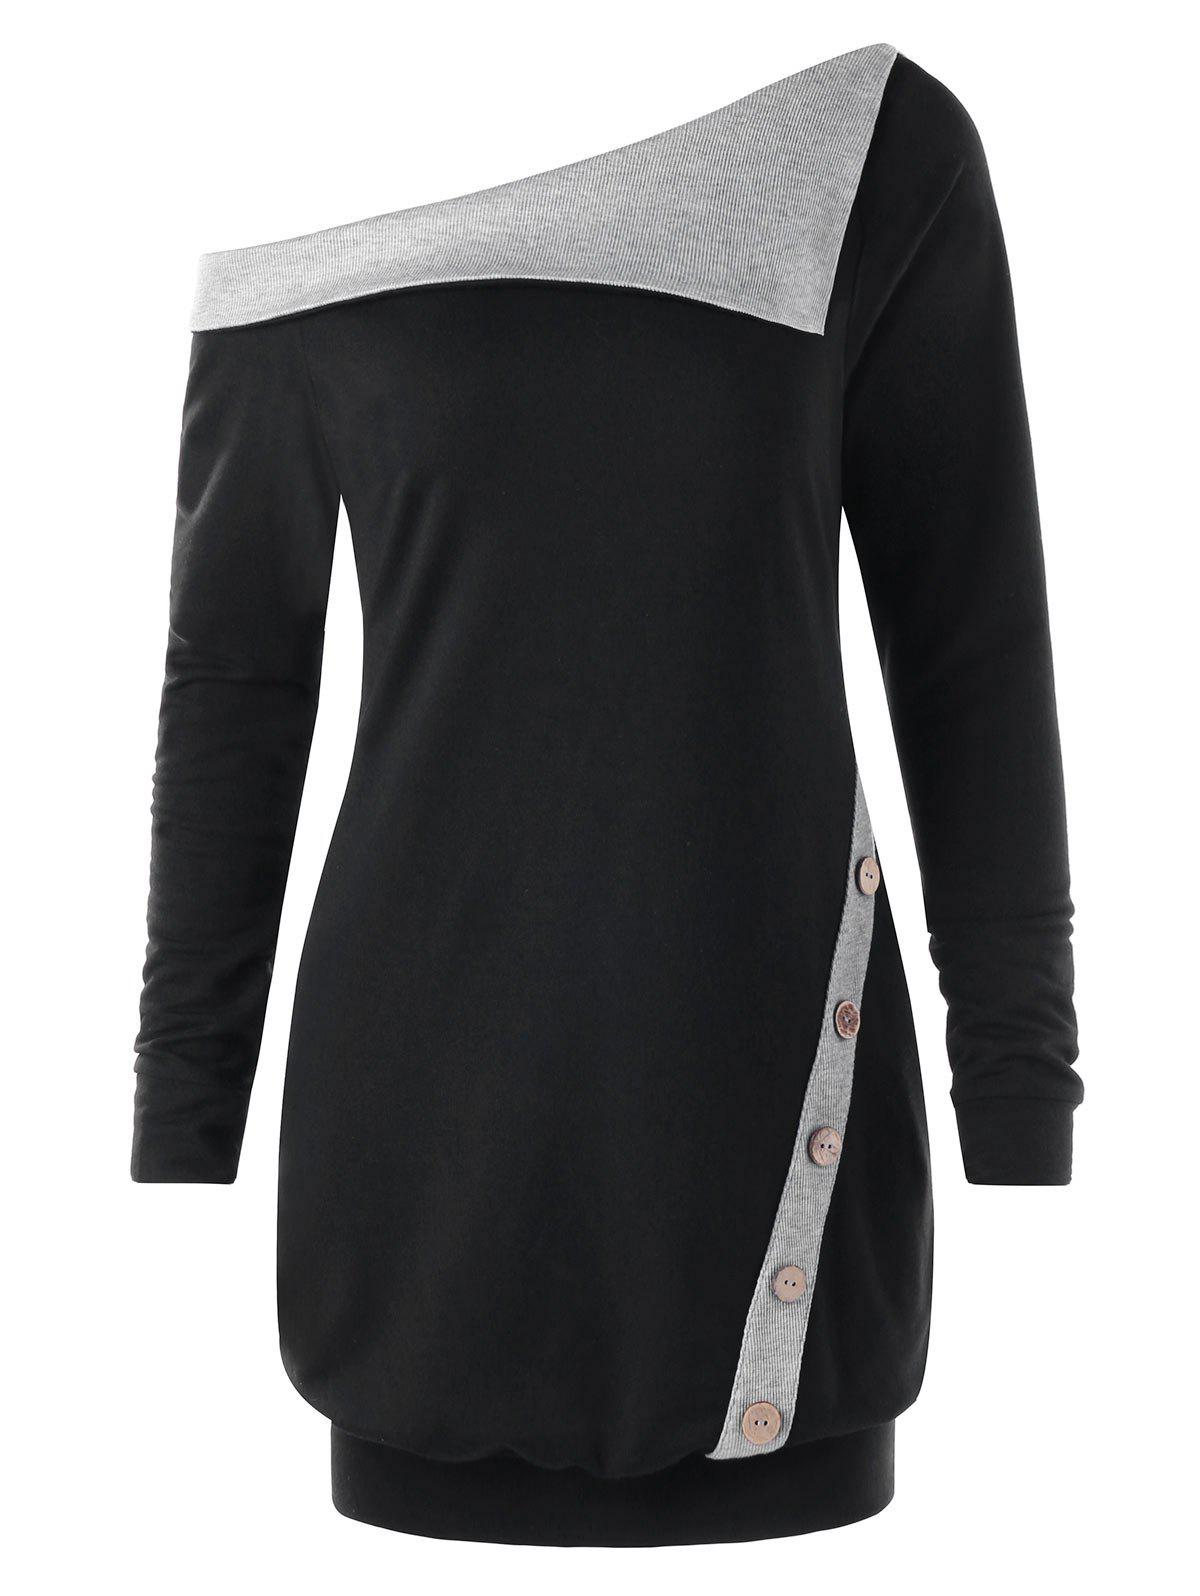 Image of Pullover Skew Neck Buttons Two Tone Sweatshirt